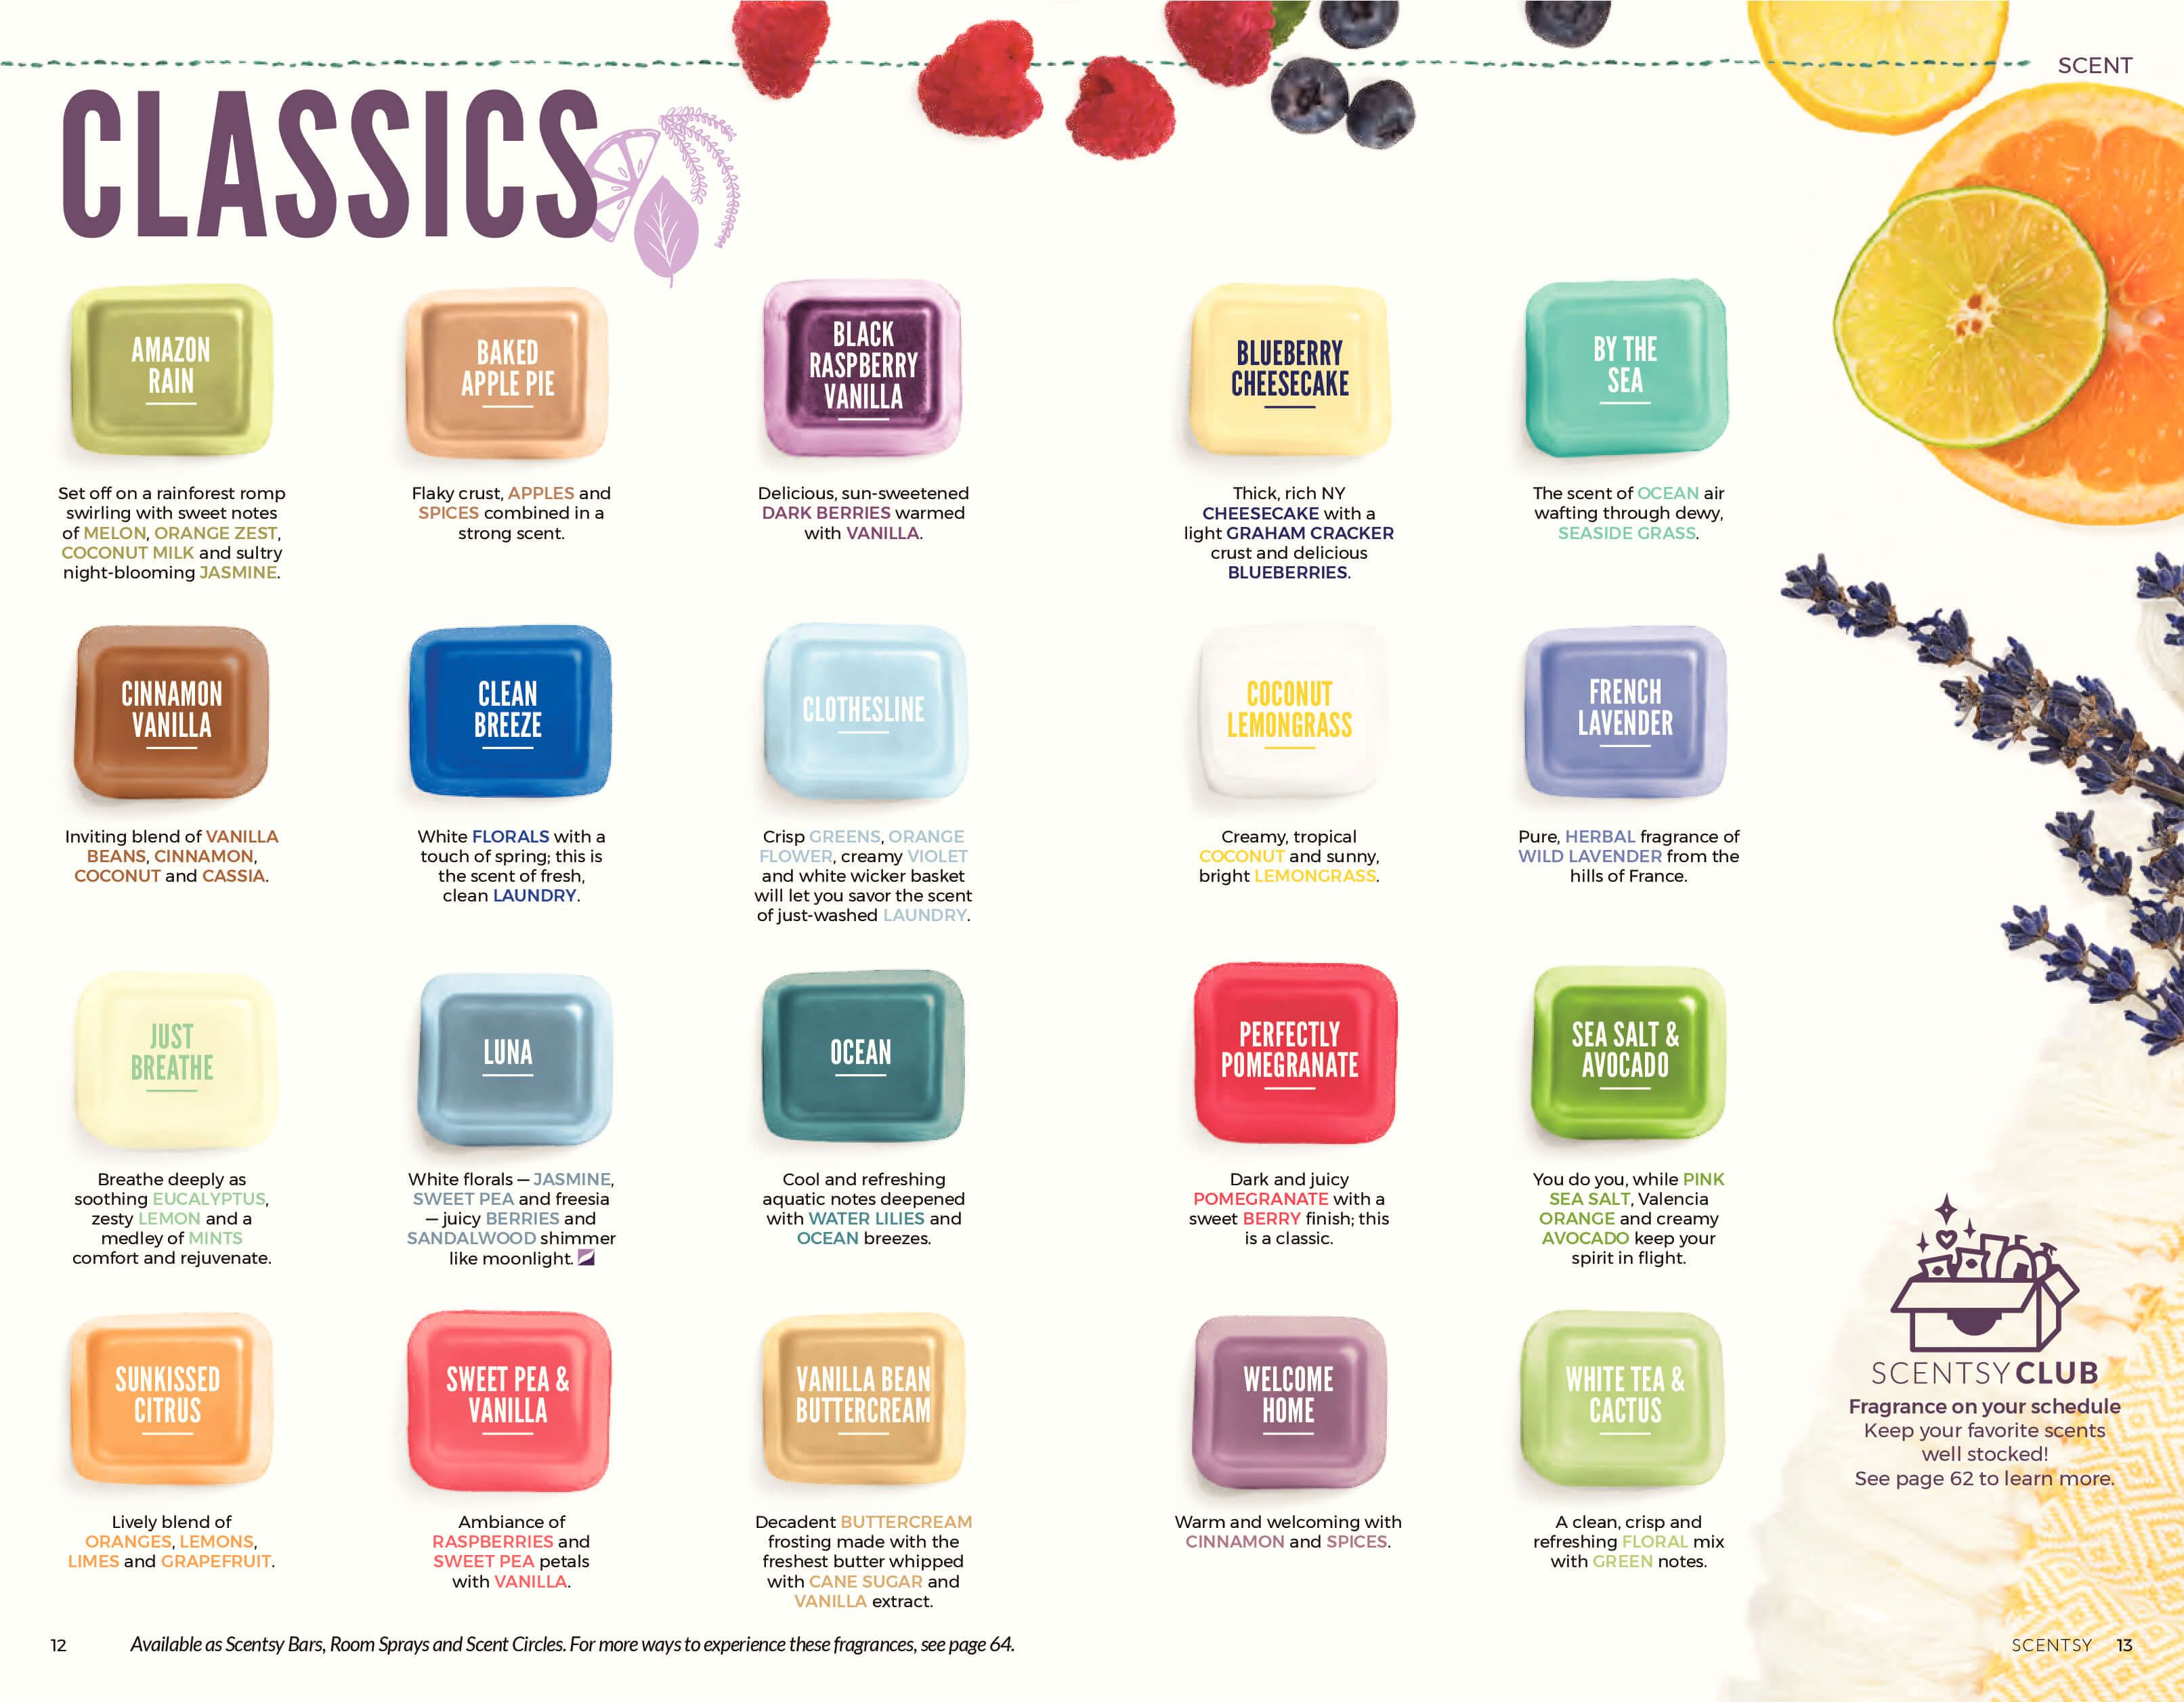 Scentsy Complete Scent List For Fall Winter 2018 2019 Scentsy Scentsy Scent Scentsy Wax Bars